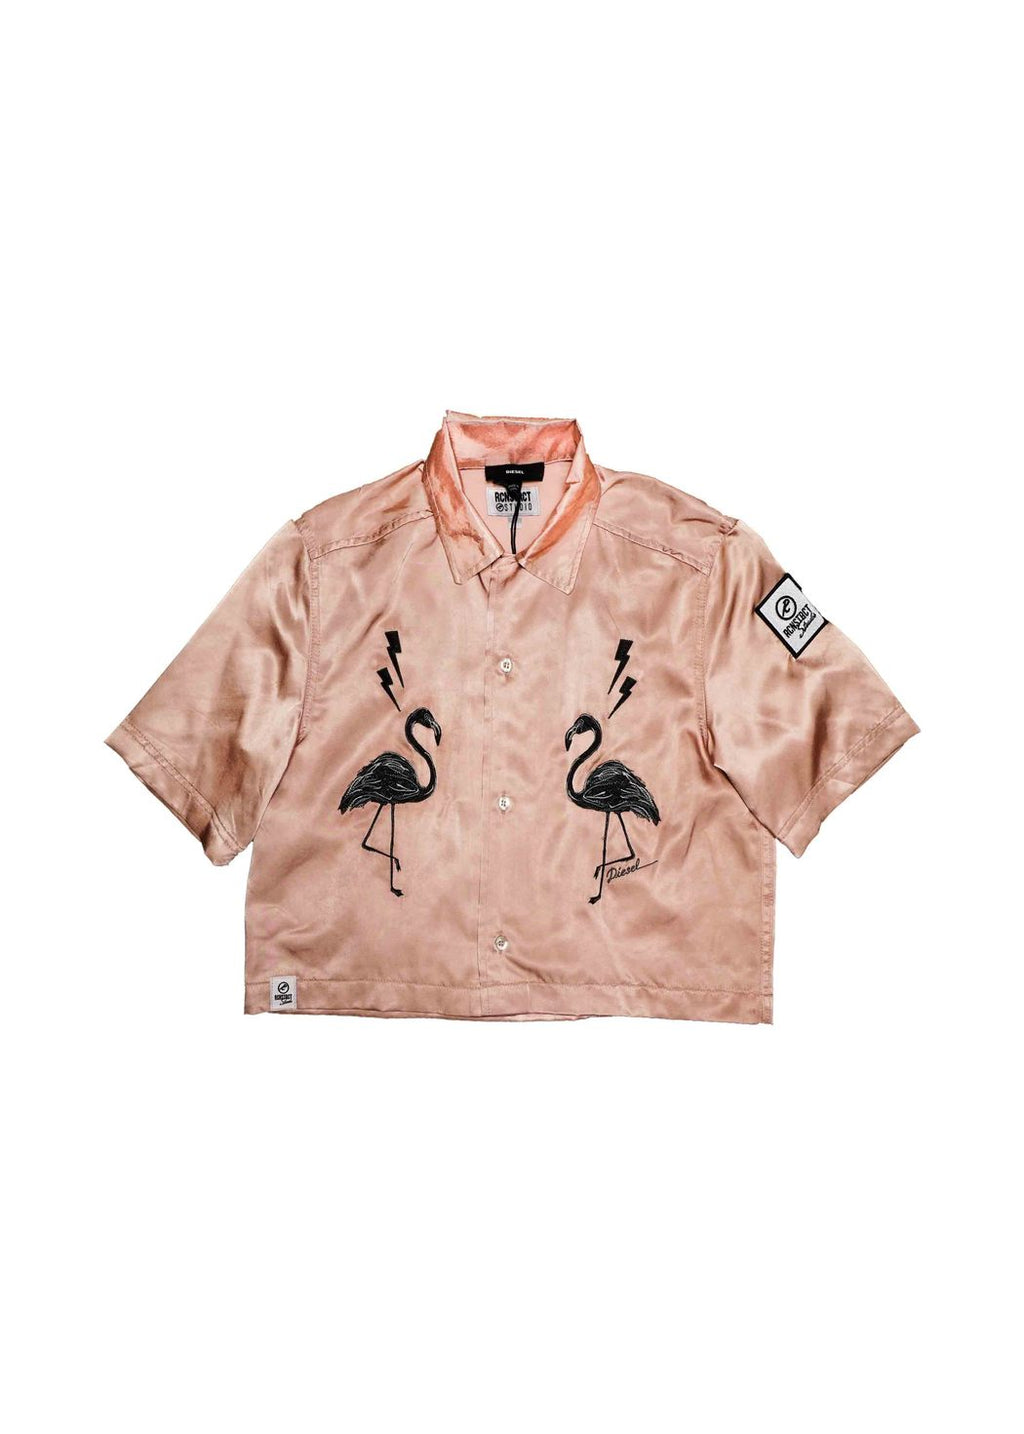 DIESEL X RCNSTRCT Miami Dreaming Blouse - EVERY*